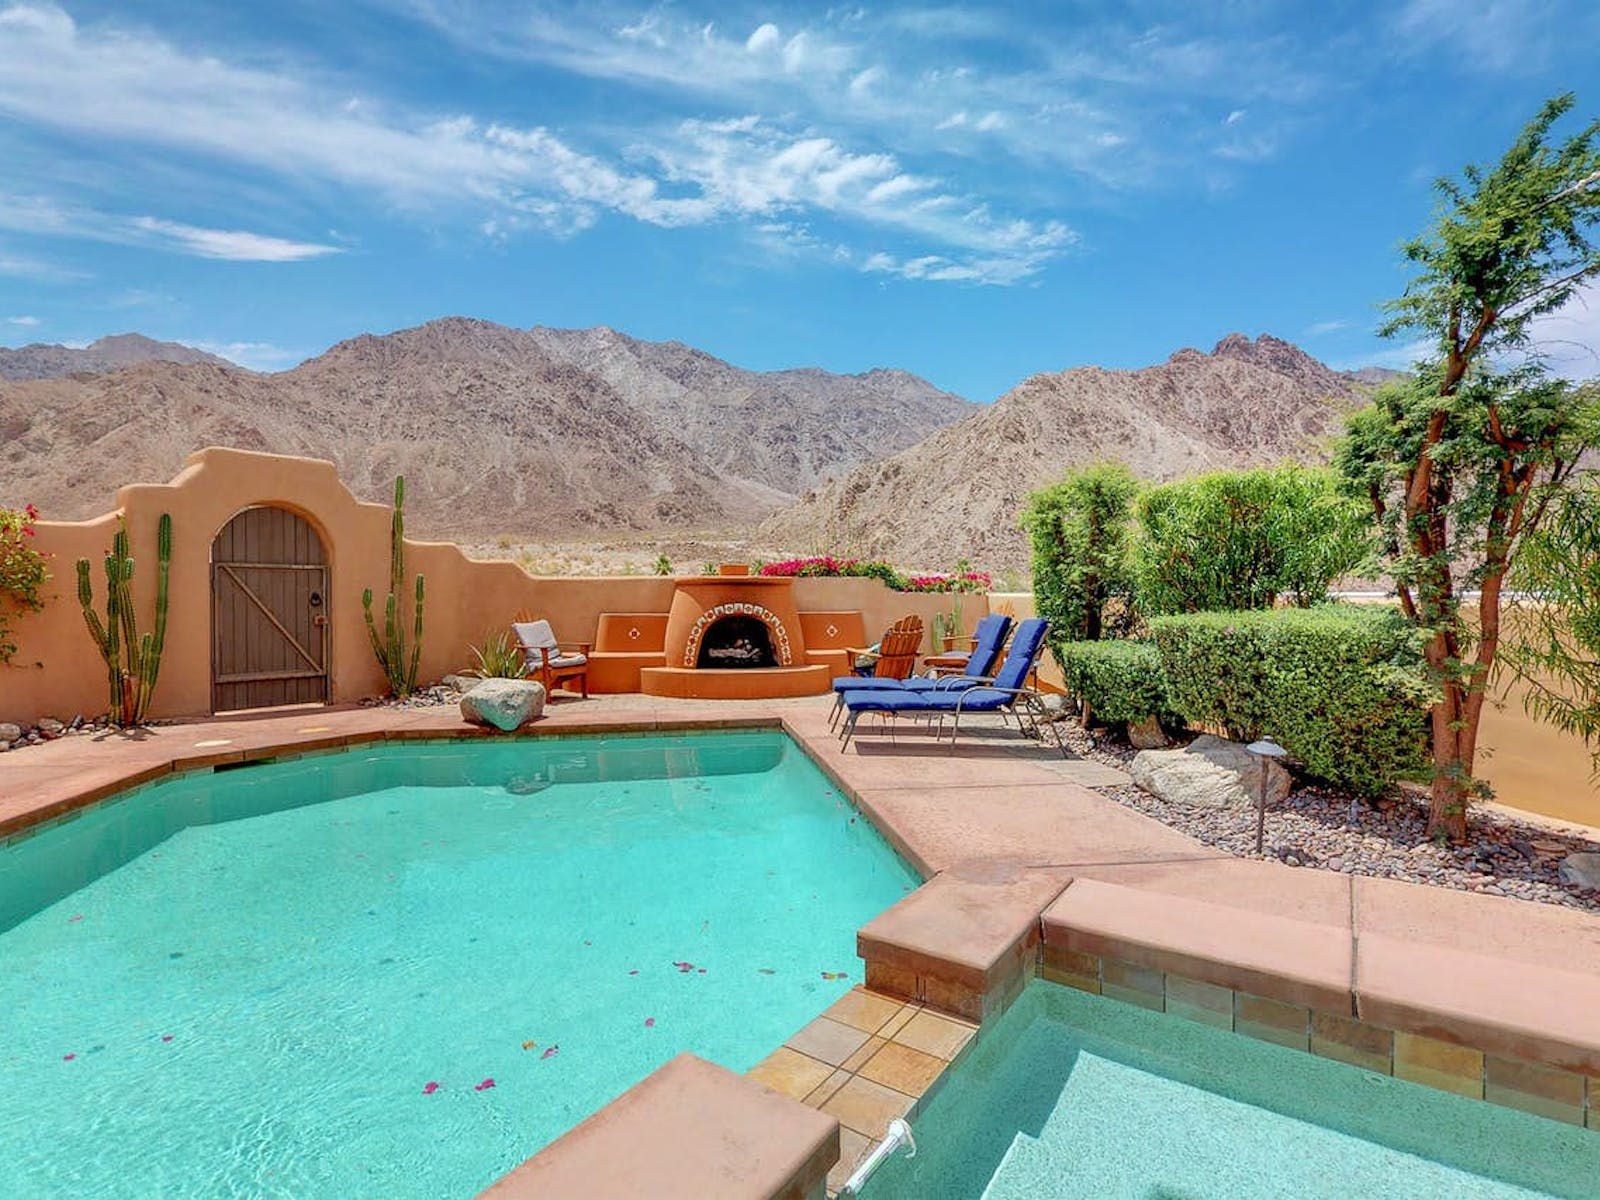 Outdoor pool located in Indio, CA